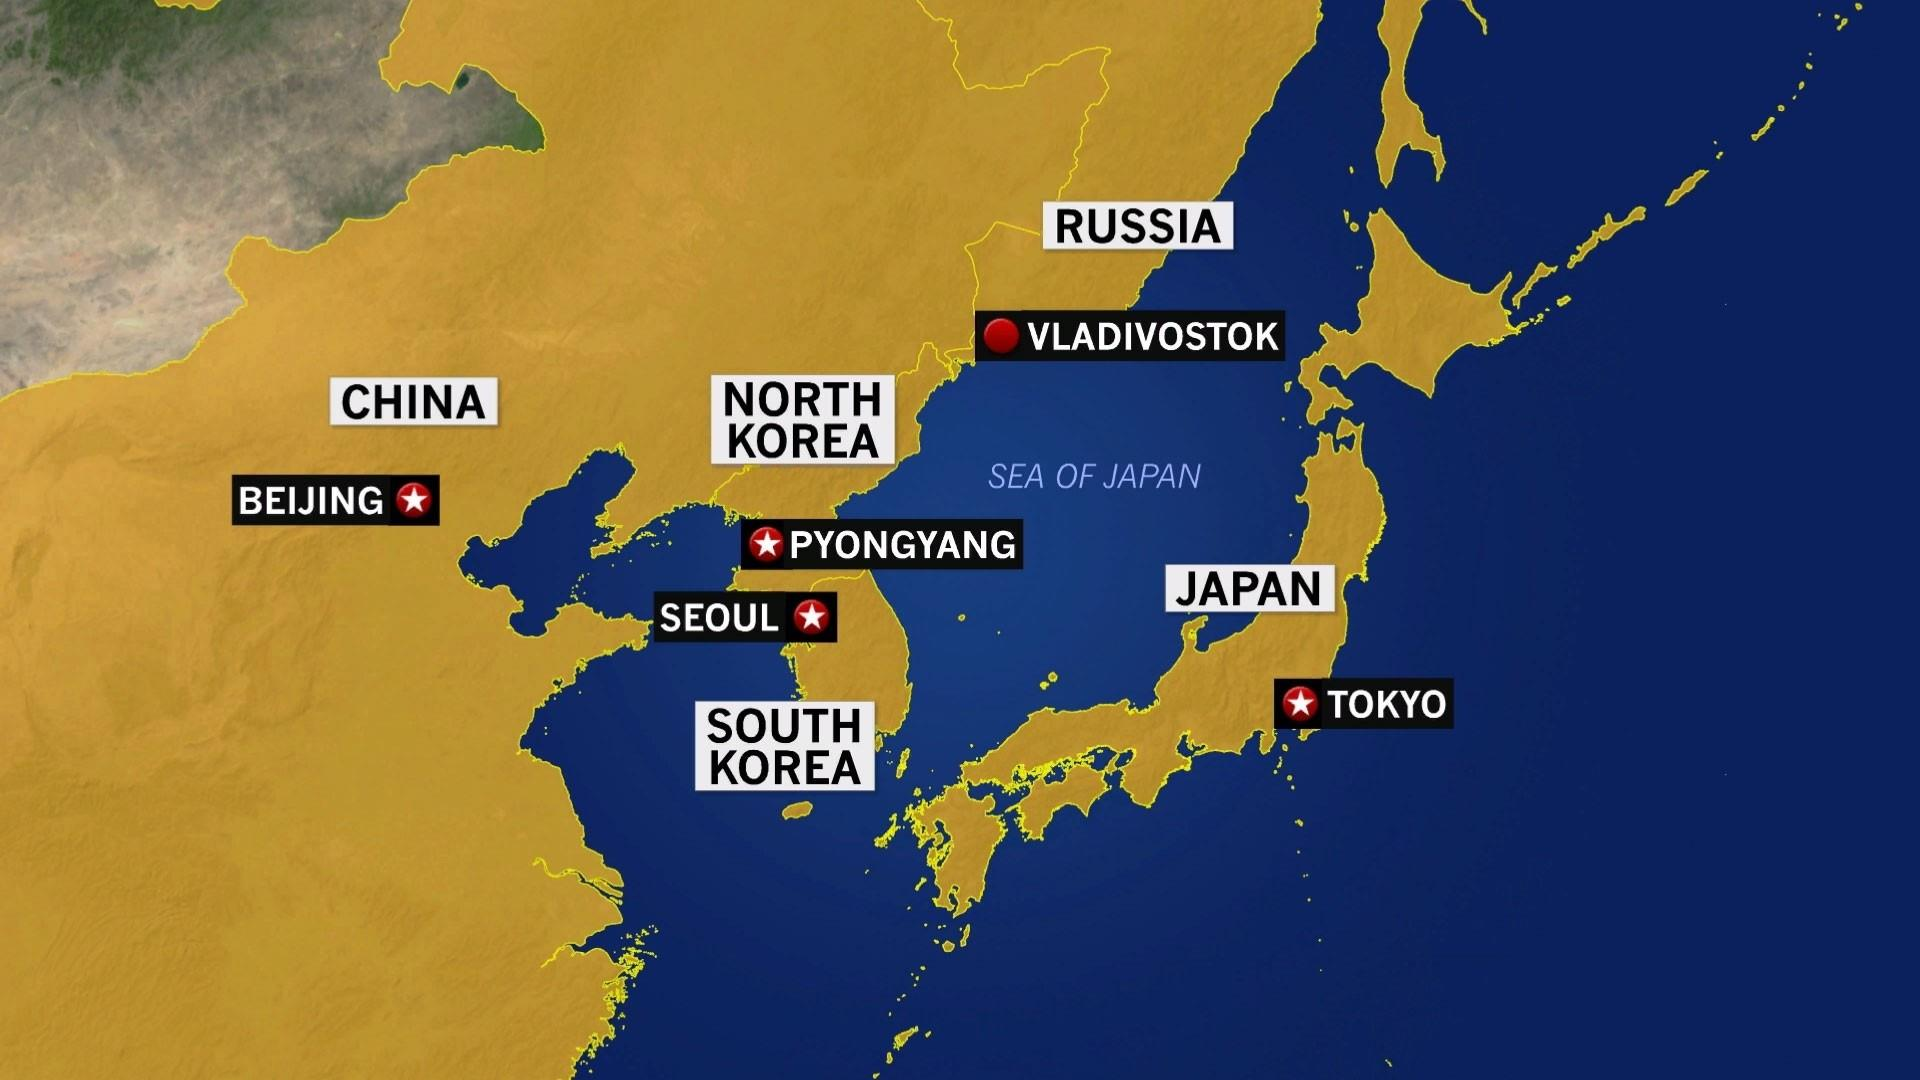 Navy sails missile near Russia-contested waters in Sea of Japan